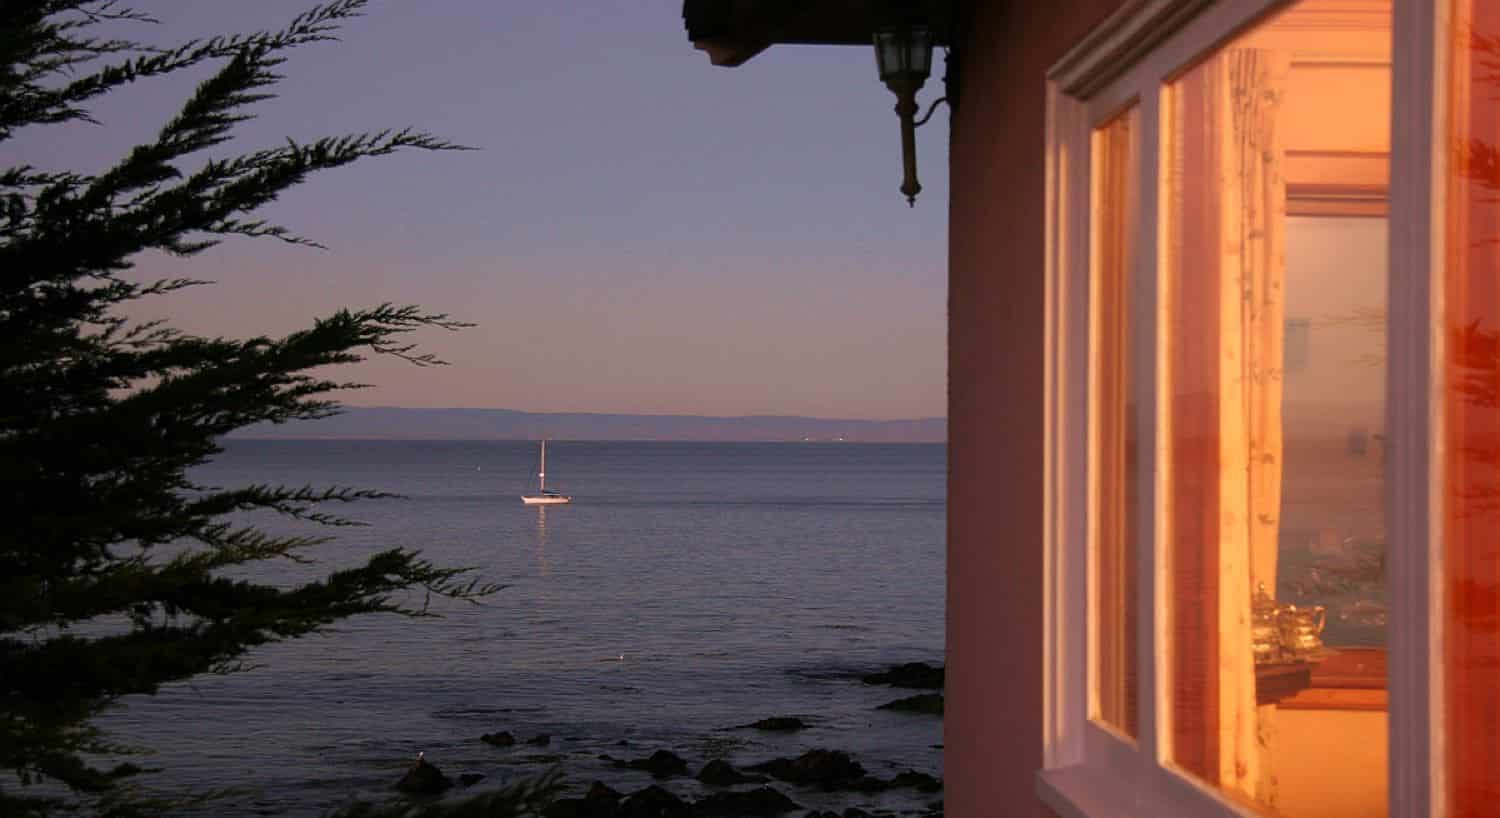 Ocean view outside the inn after sunset with single sailboat